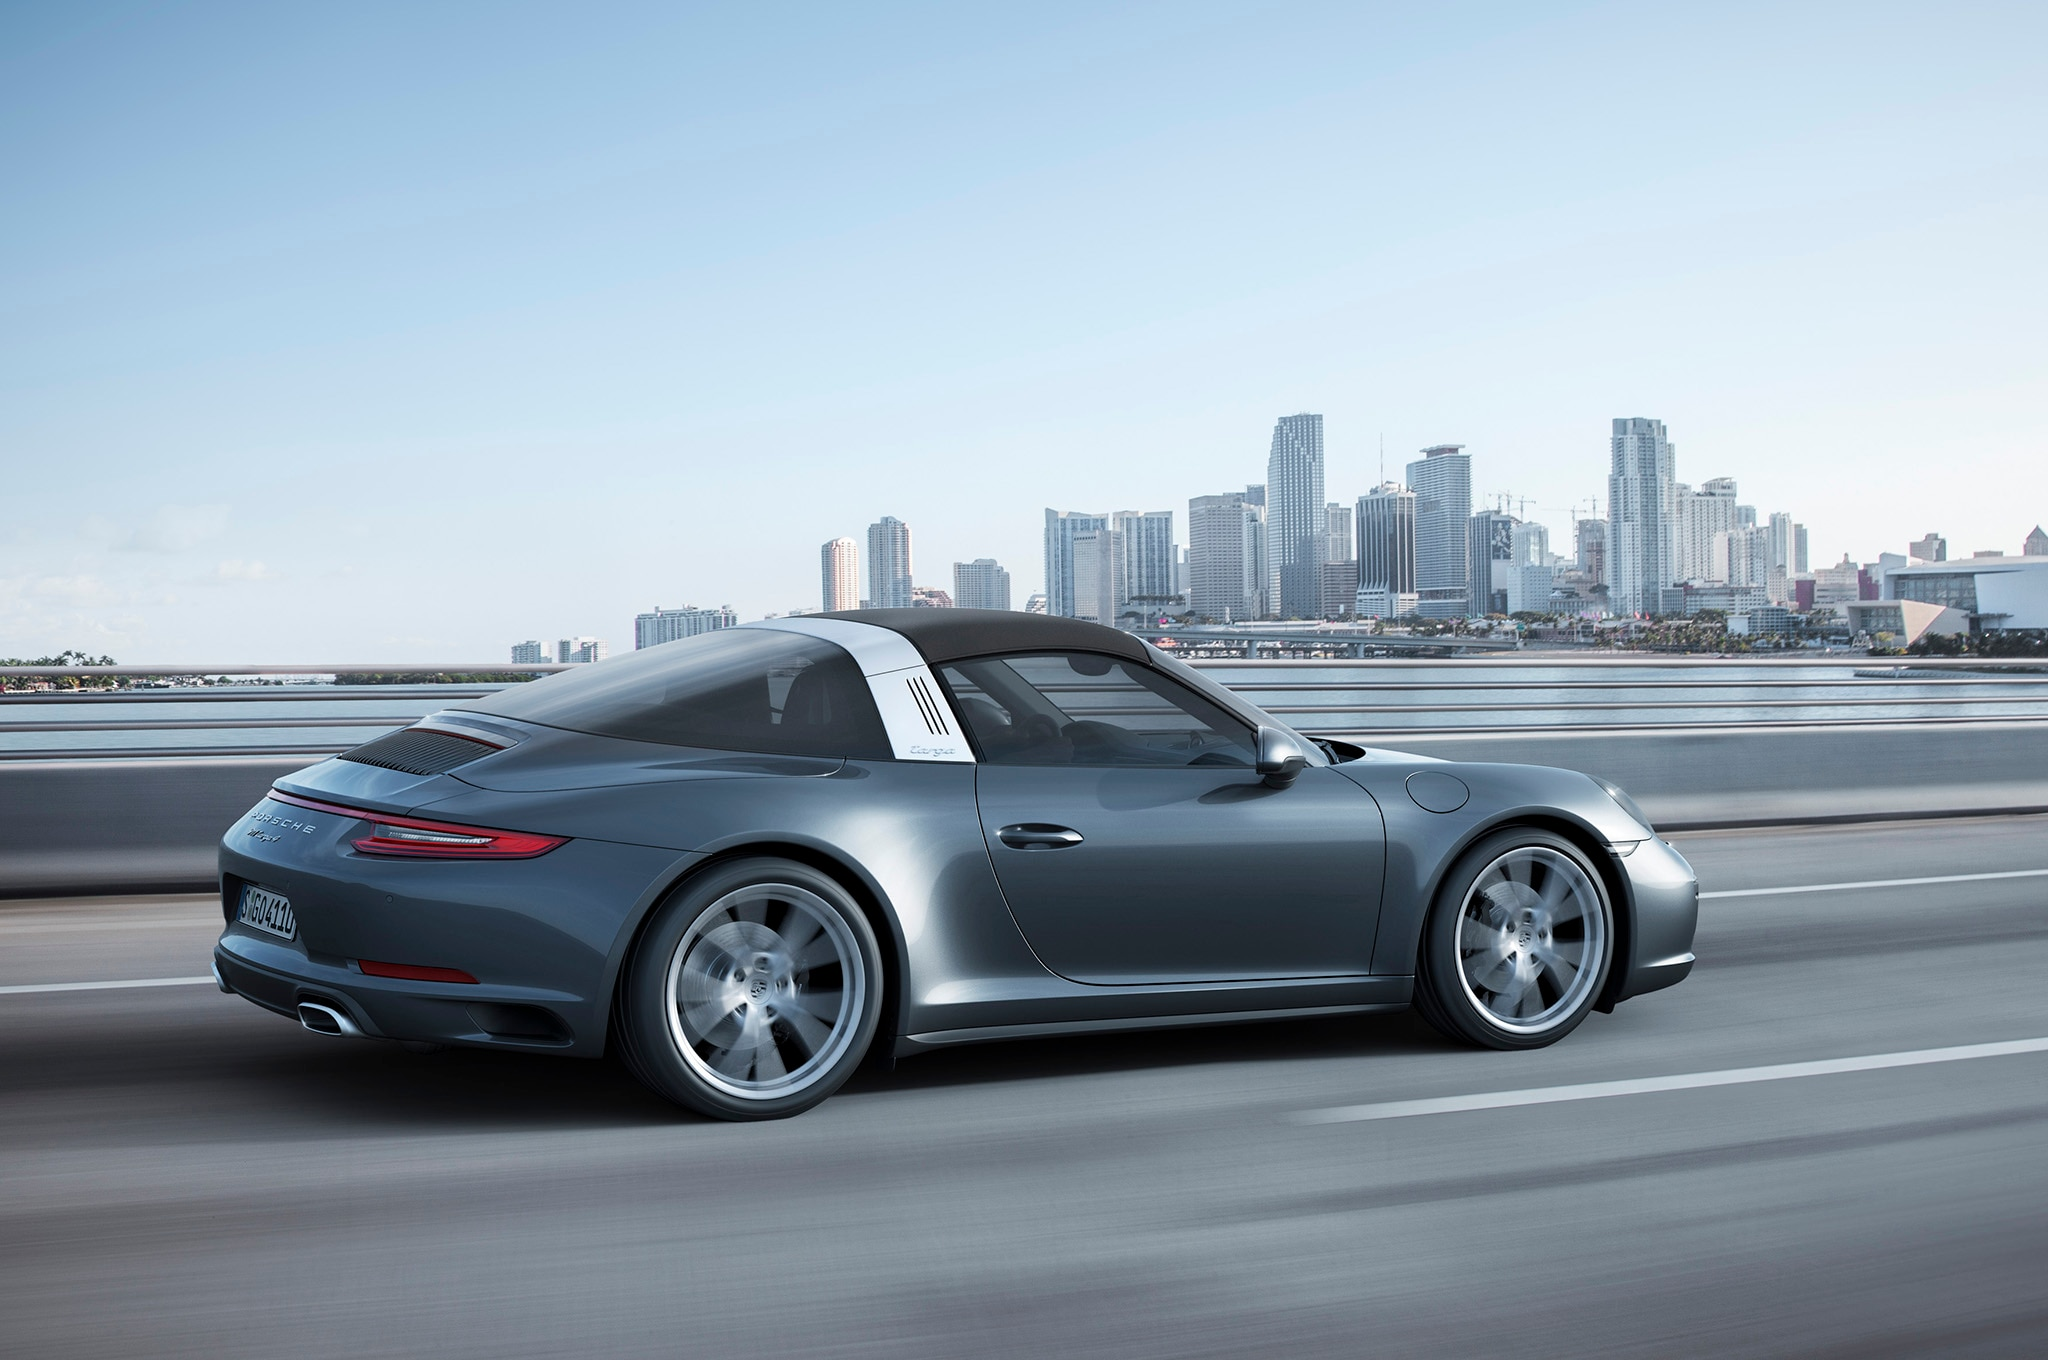 2017 porsche 911 carrera 4 and targa 4 receive turbocharged engines. Black Bedroom Furniture Sets. Home Design Ideas